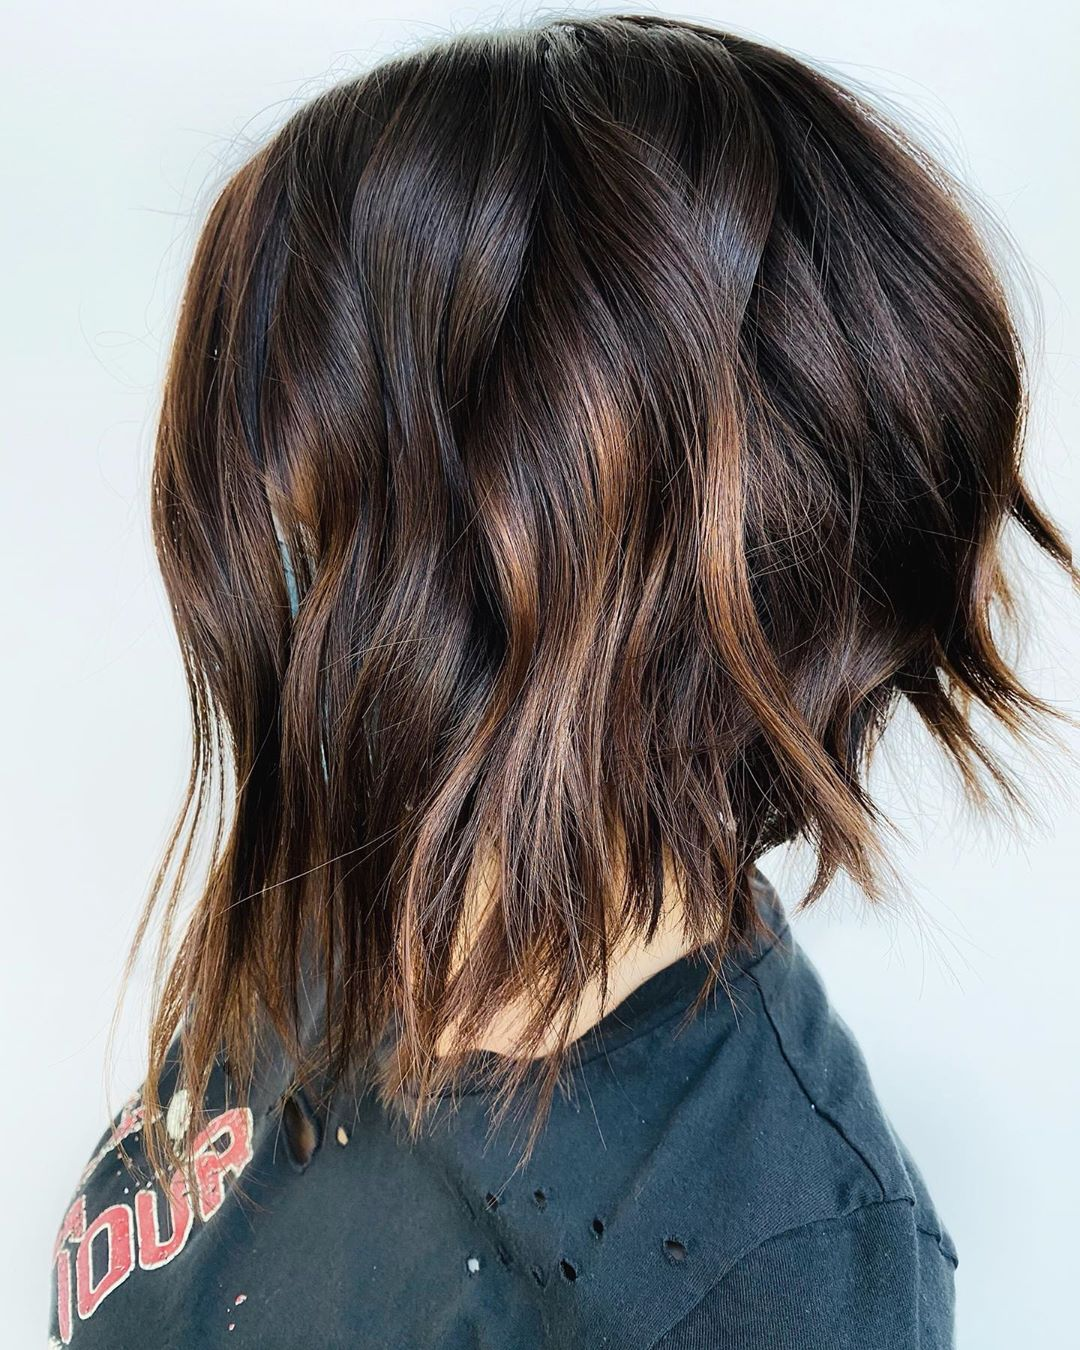 Short Dark Beachy Waves with Caramel Highlights